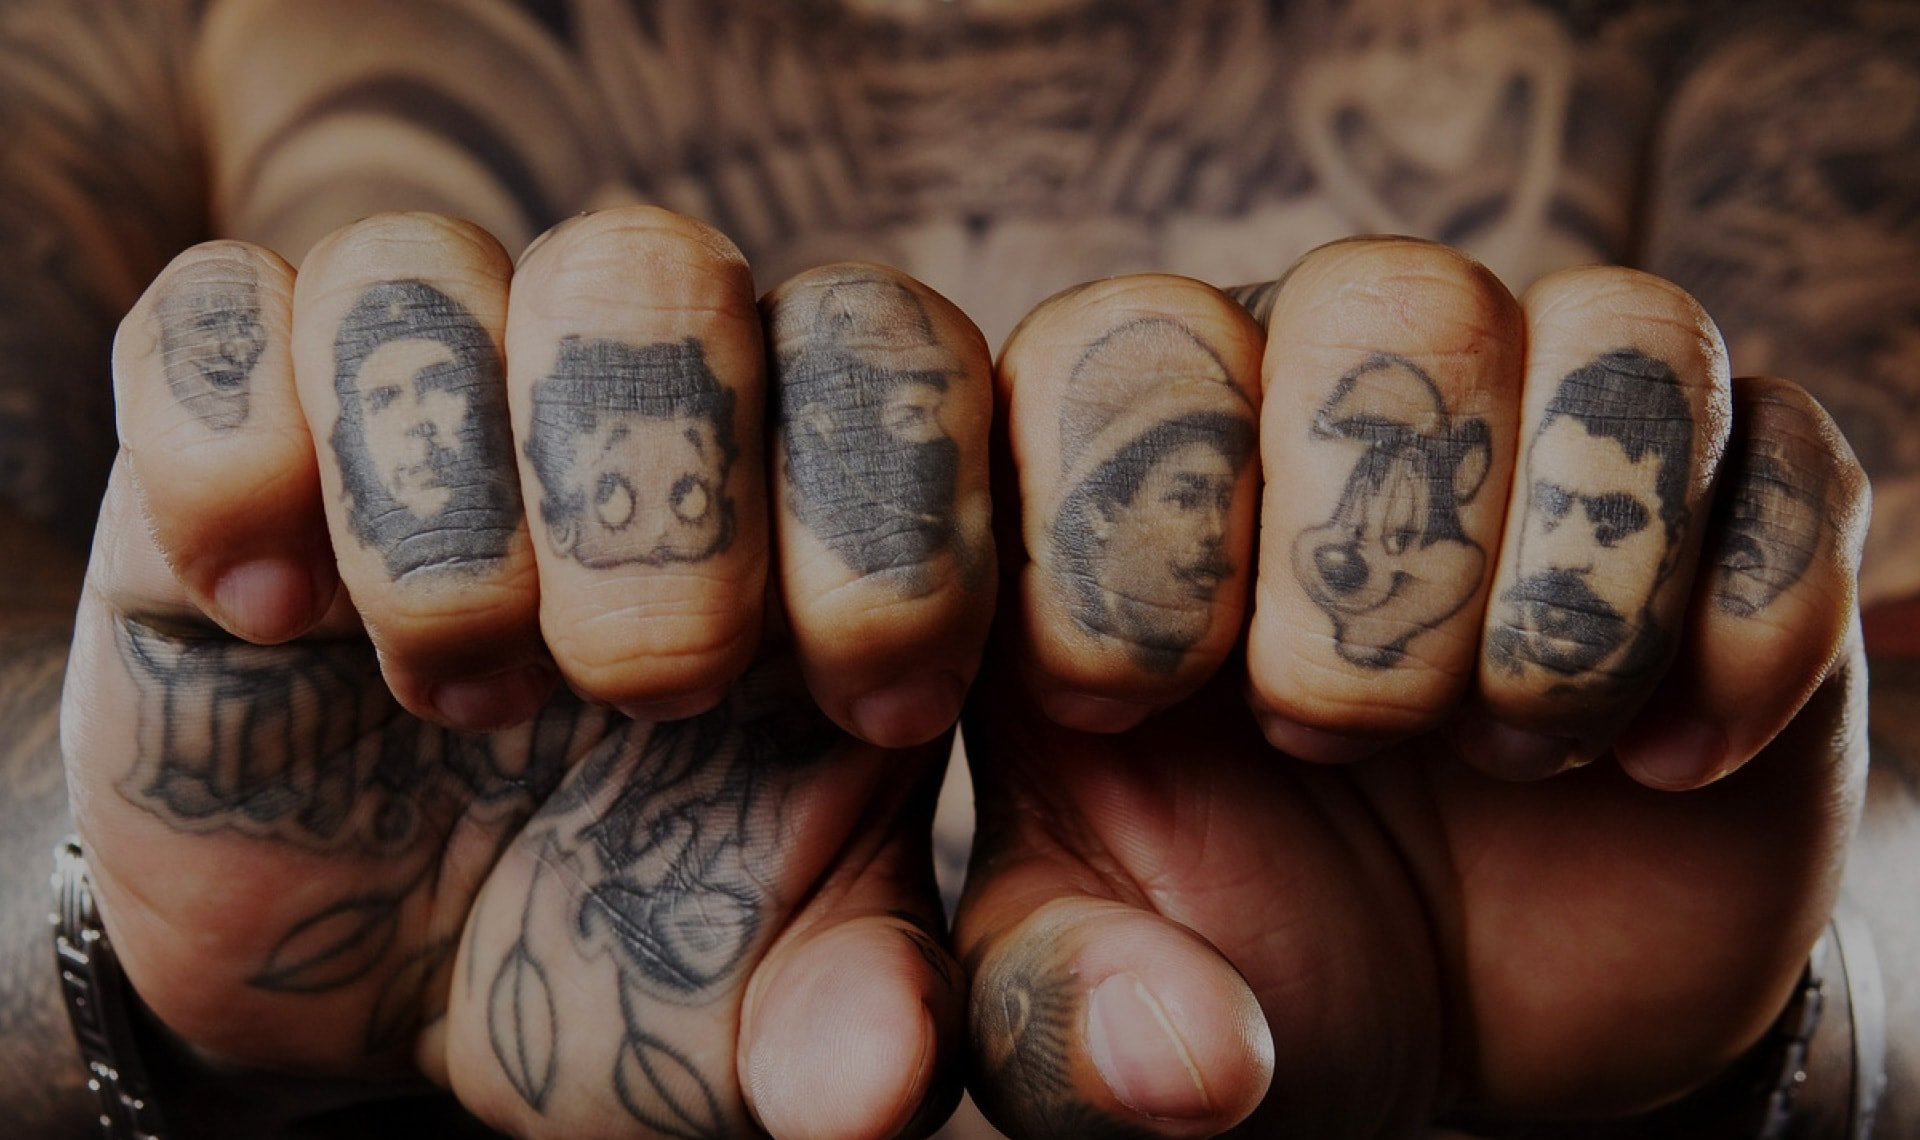 amous faces tattooed across a mans knuckles